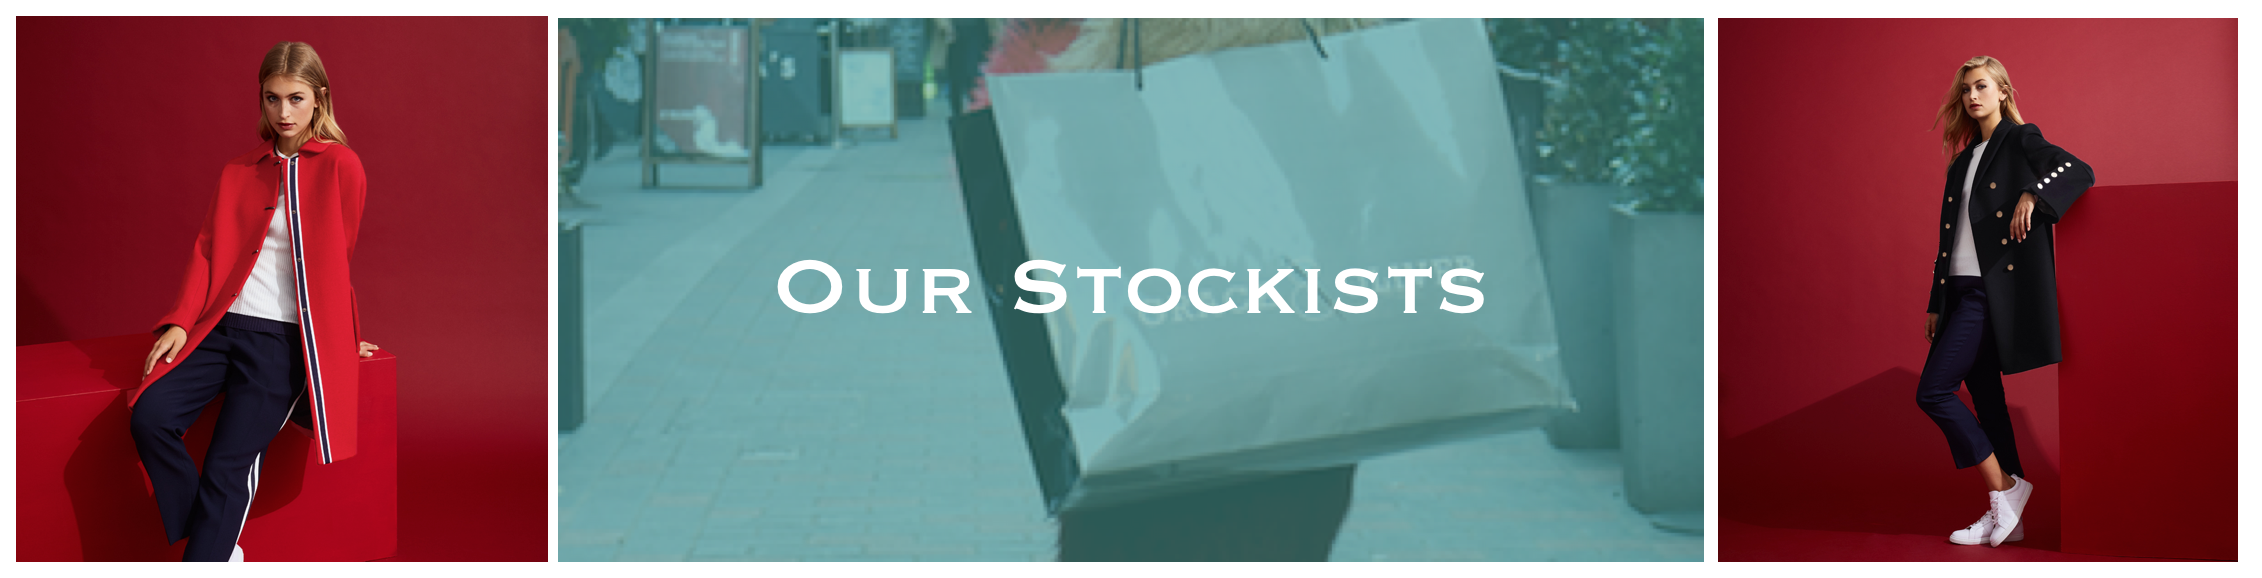 stockists-header.png